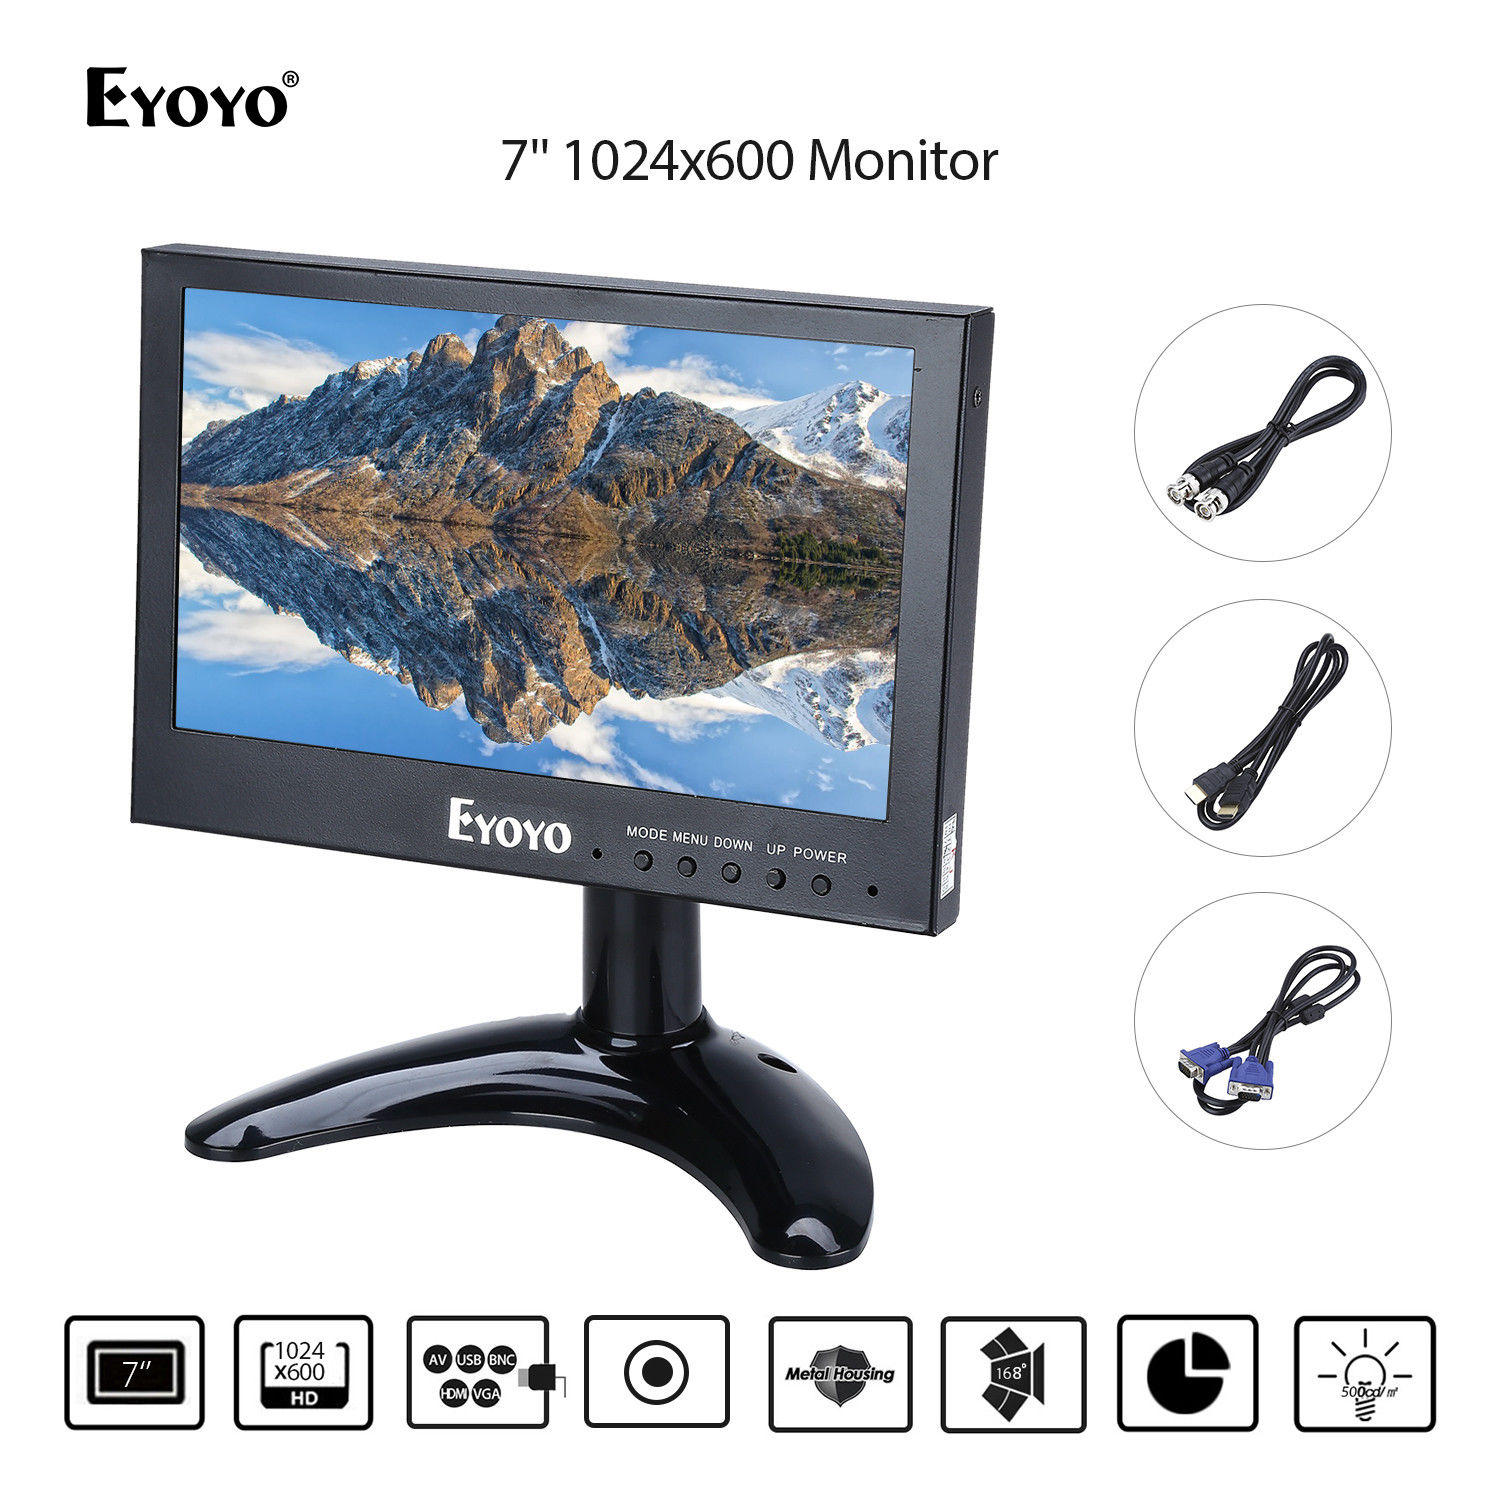 Eyoyo  7 Mini Monitor 1024x768 LCD Screen Display BNC/VGA/AV/HDMI Output Metal Hosing Design 168degree Wide Angle View Black zgynk 10 1 inch open frame industrial monitor metal monitor with vga av bnc hdmi monitor